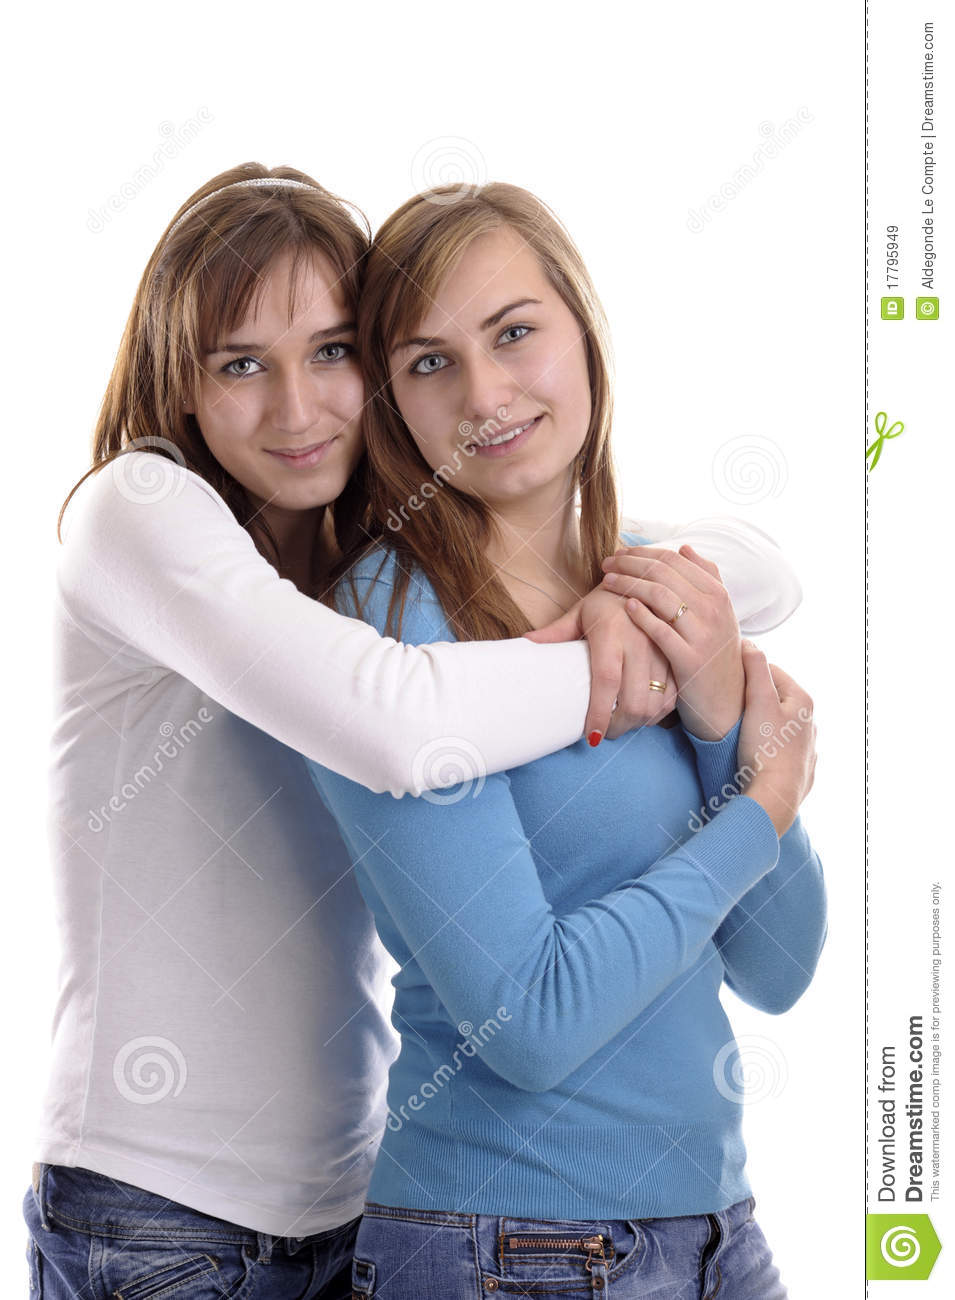 b24d68cdfc Two Young Women Hugging Each Other Stock Image - Image of young ...